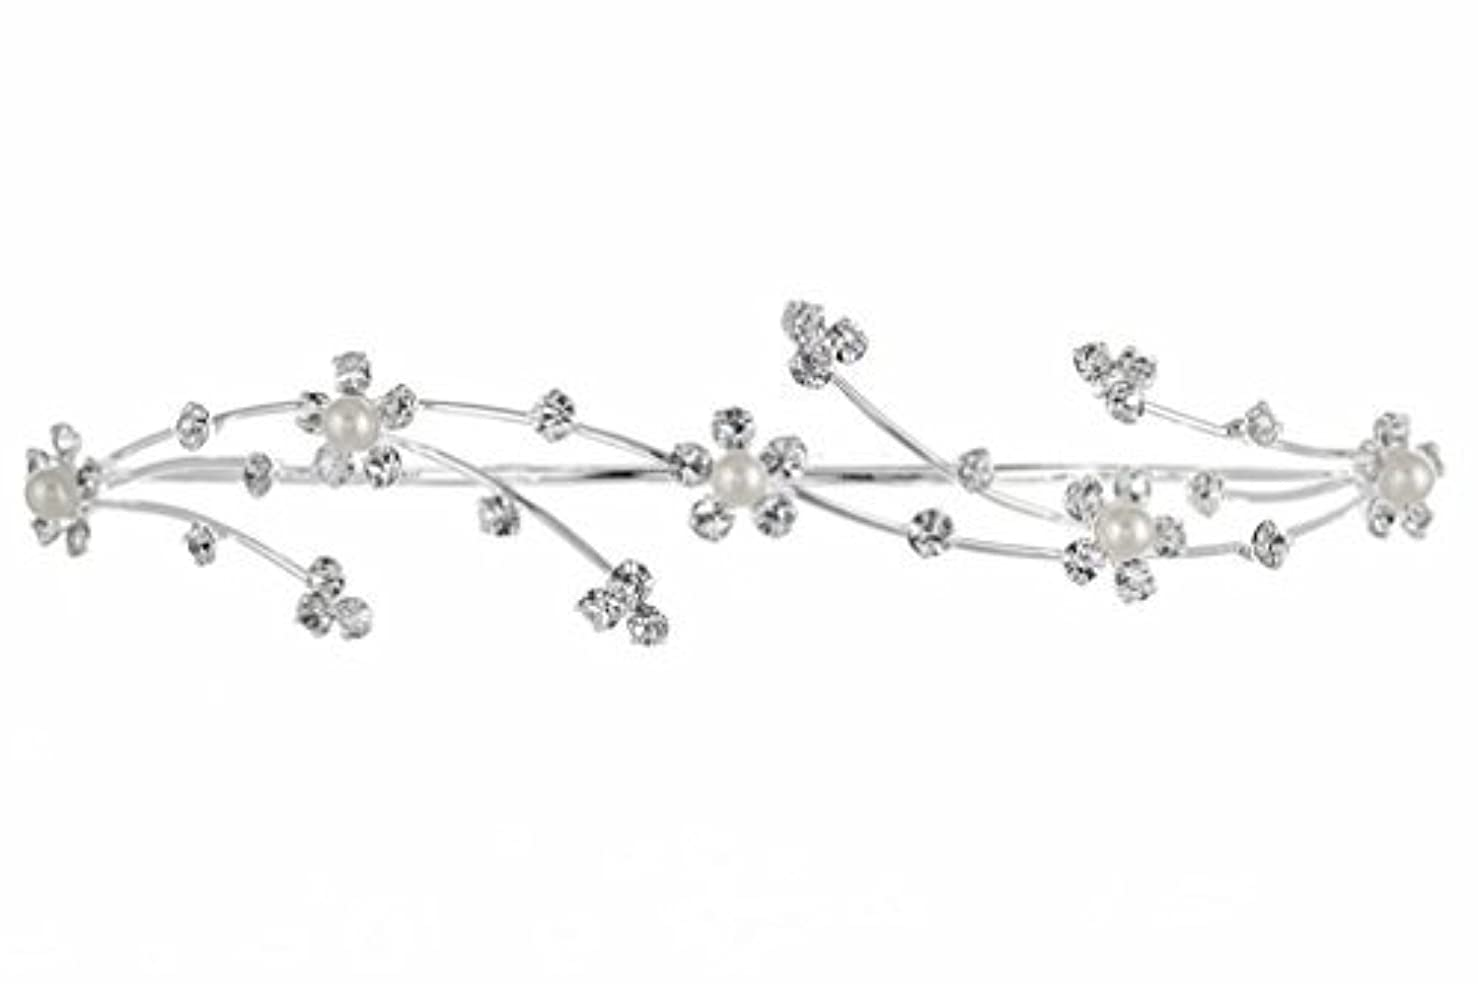 アヒルリング王室Elegant Flower Girl Bridesmaid Tiara Hair Comb - Silver Plated Faux Pearls T160 [並行輸入品]